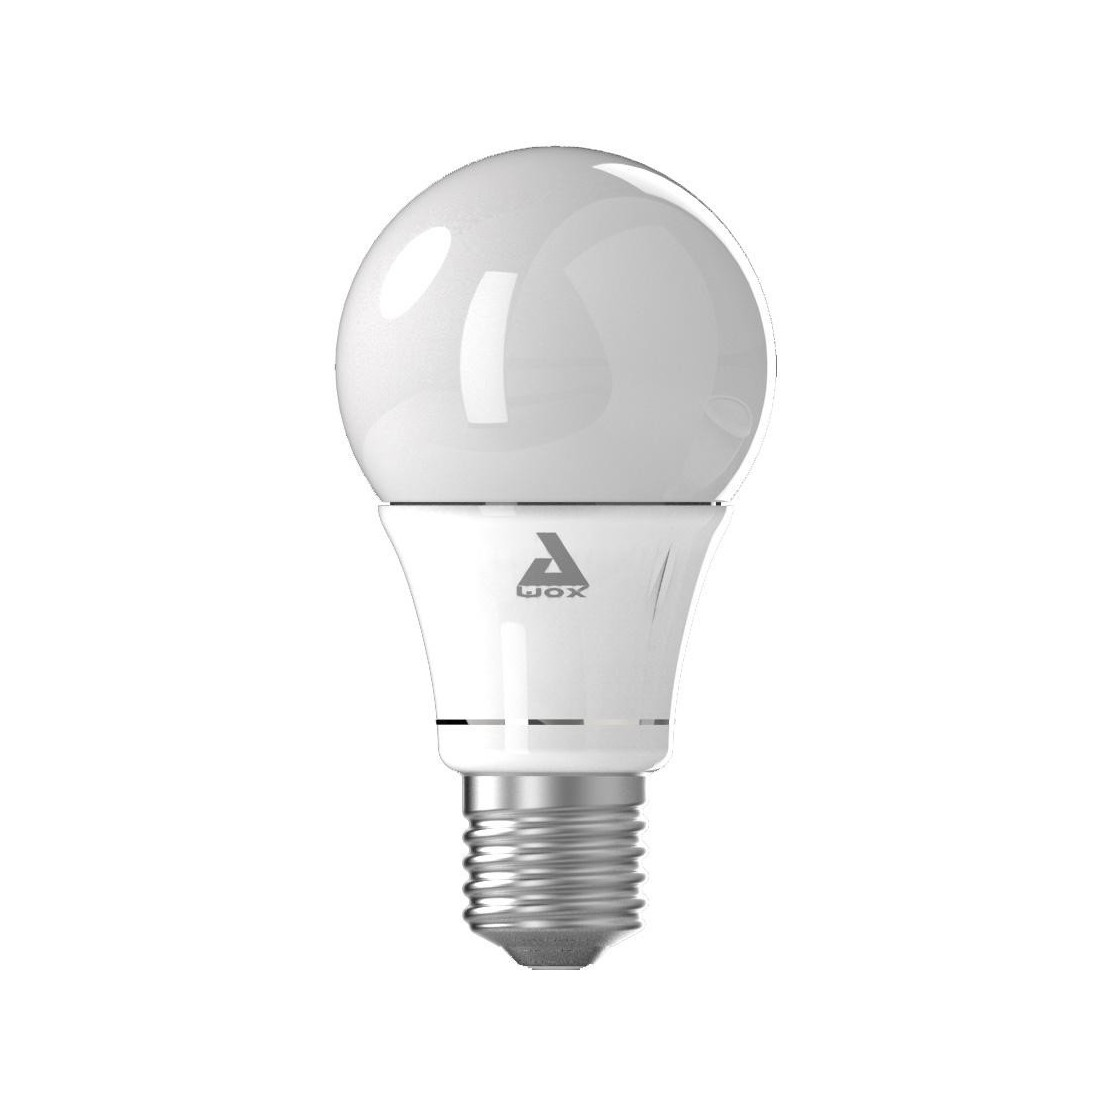 SmartLED - smartlamp, E27, wit, Bluetooth